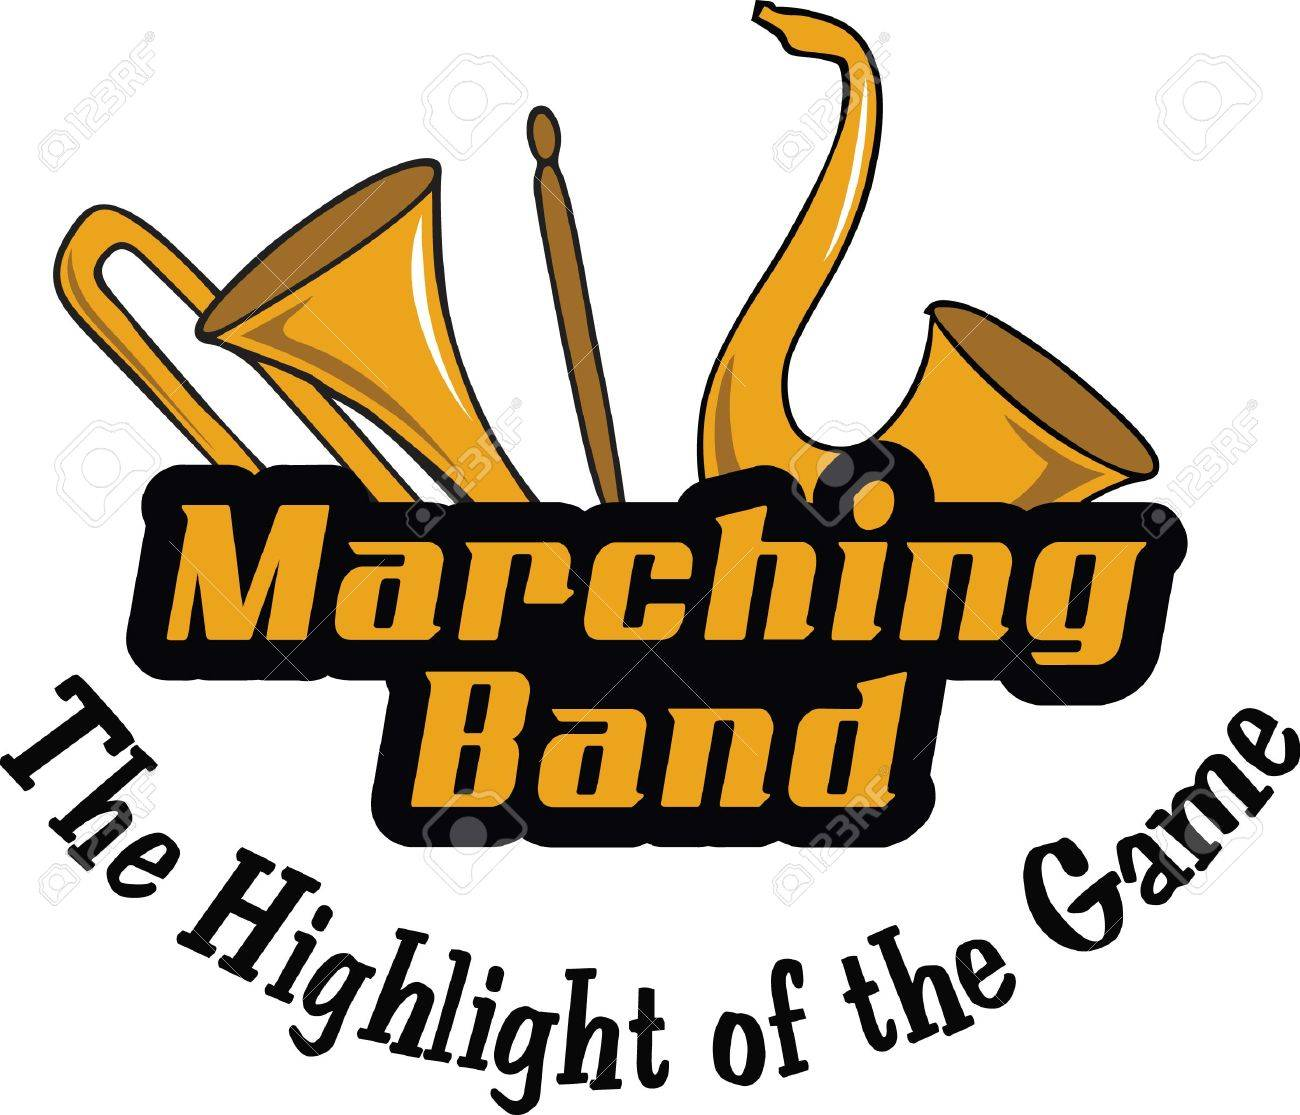 Make a marching band project with these instruments..